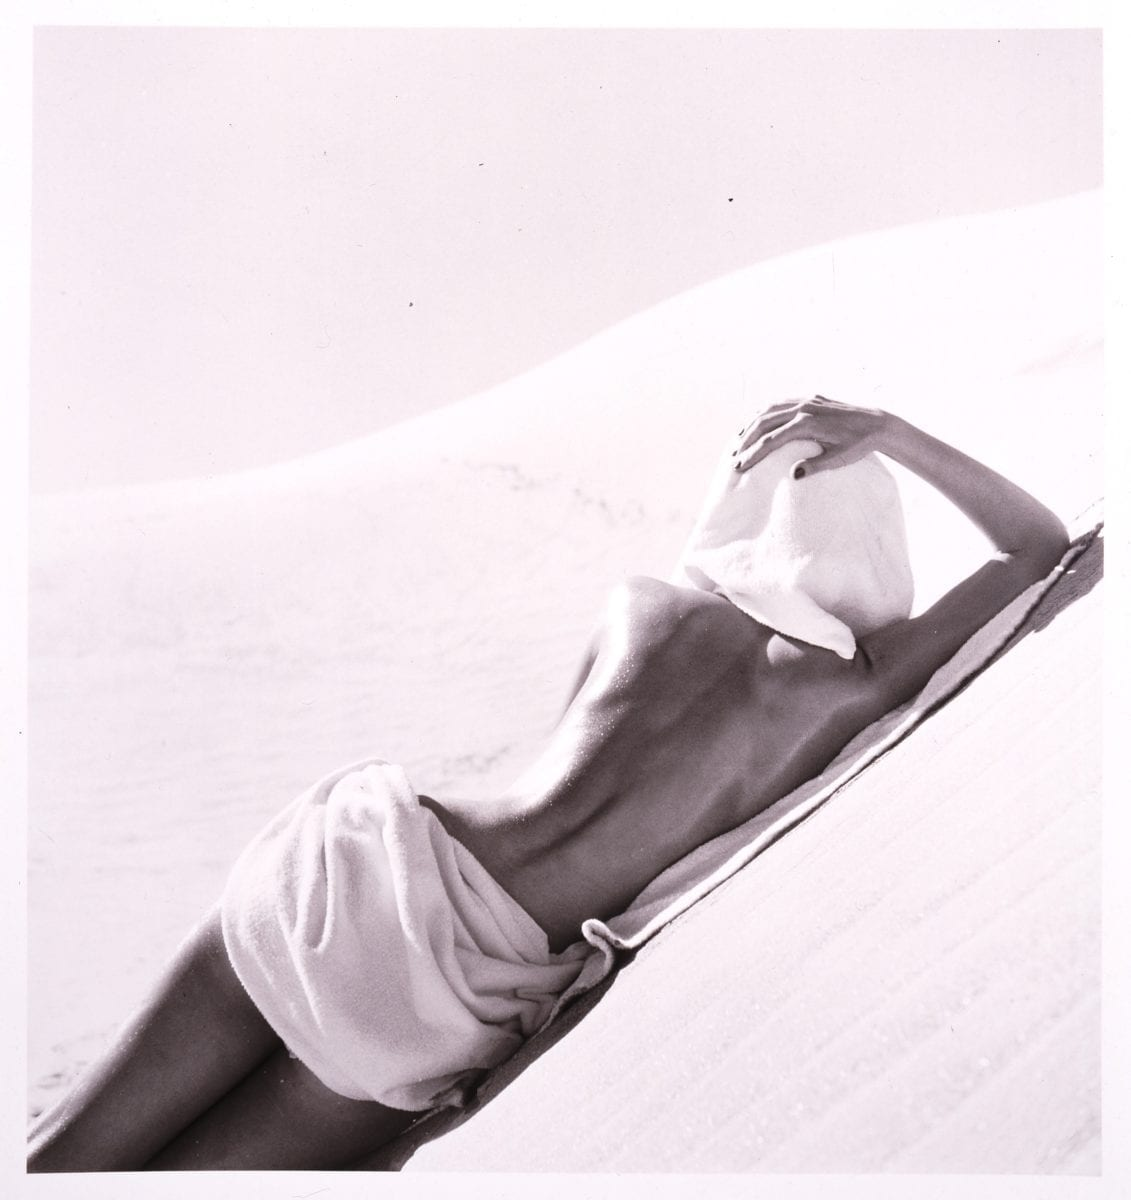 Louise Dahl-Wolfe, California Desert, 1948; Gelatin silver print, 14 x 11 in.; National Museum of Women in the Arts, Gift of Helen Cumming Ziegler; © 1989 Center for Creative Photography, Arizona Board of Regents